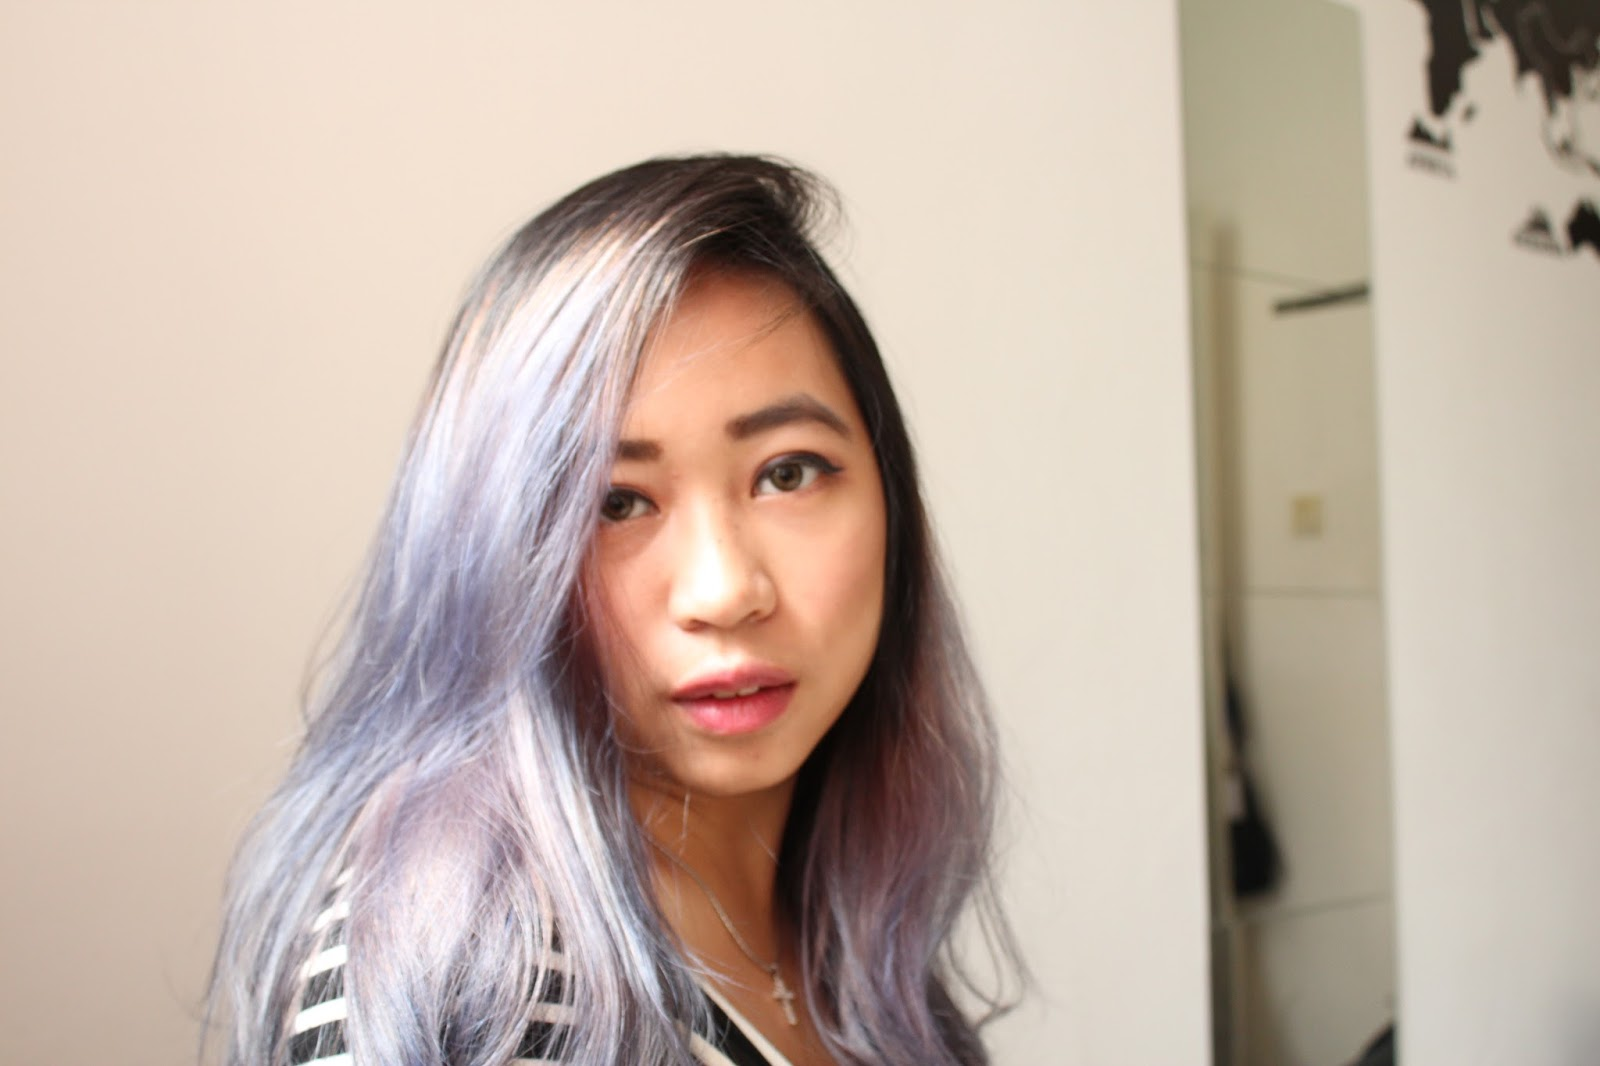 This is a photo of my new ash purple hair for summer by Sidney Scarlett from www.sidneyscarlett.com